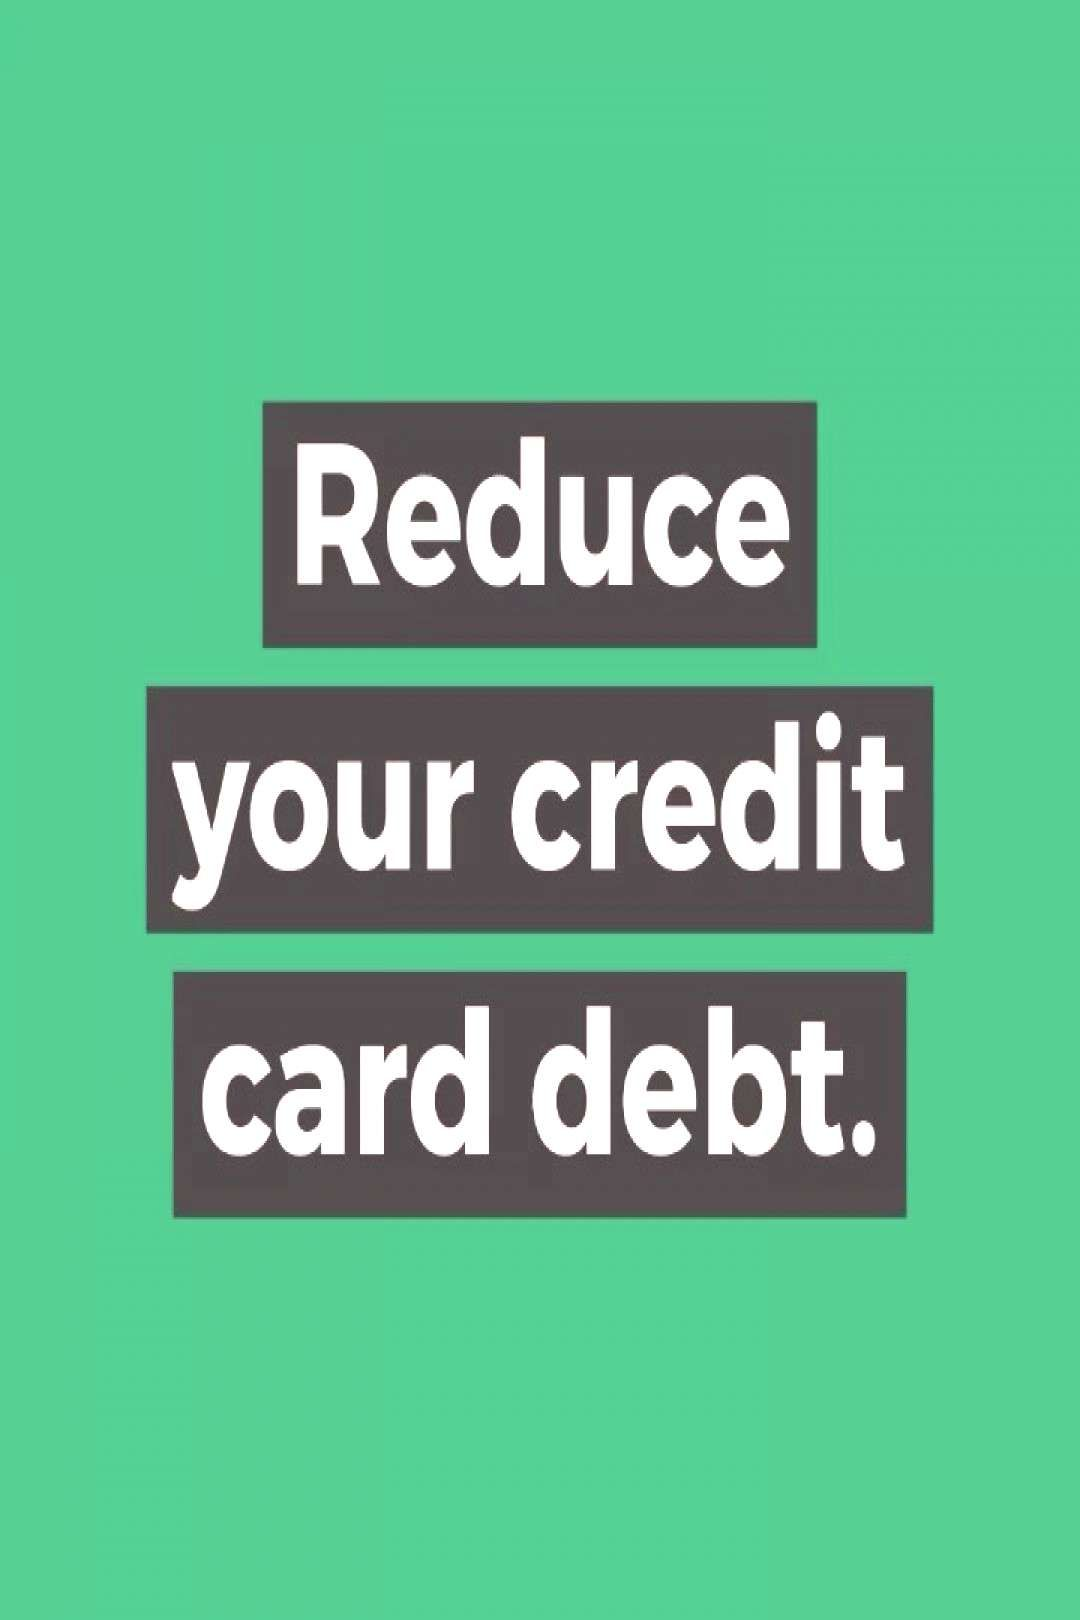 Savingmoney Reducing Reduce Credit Start Your Card Debt With Goal Of A Reduce Your Credit Card Credit Card Website Budgeting Tips Credit Cards Debt